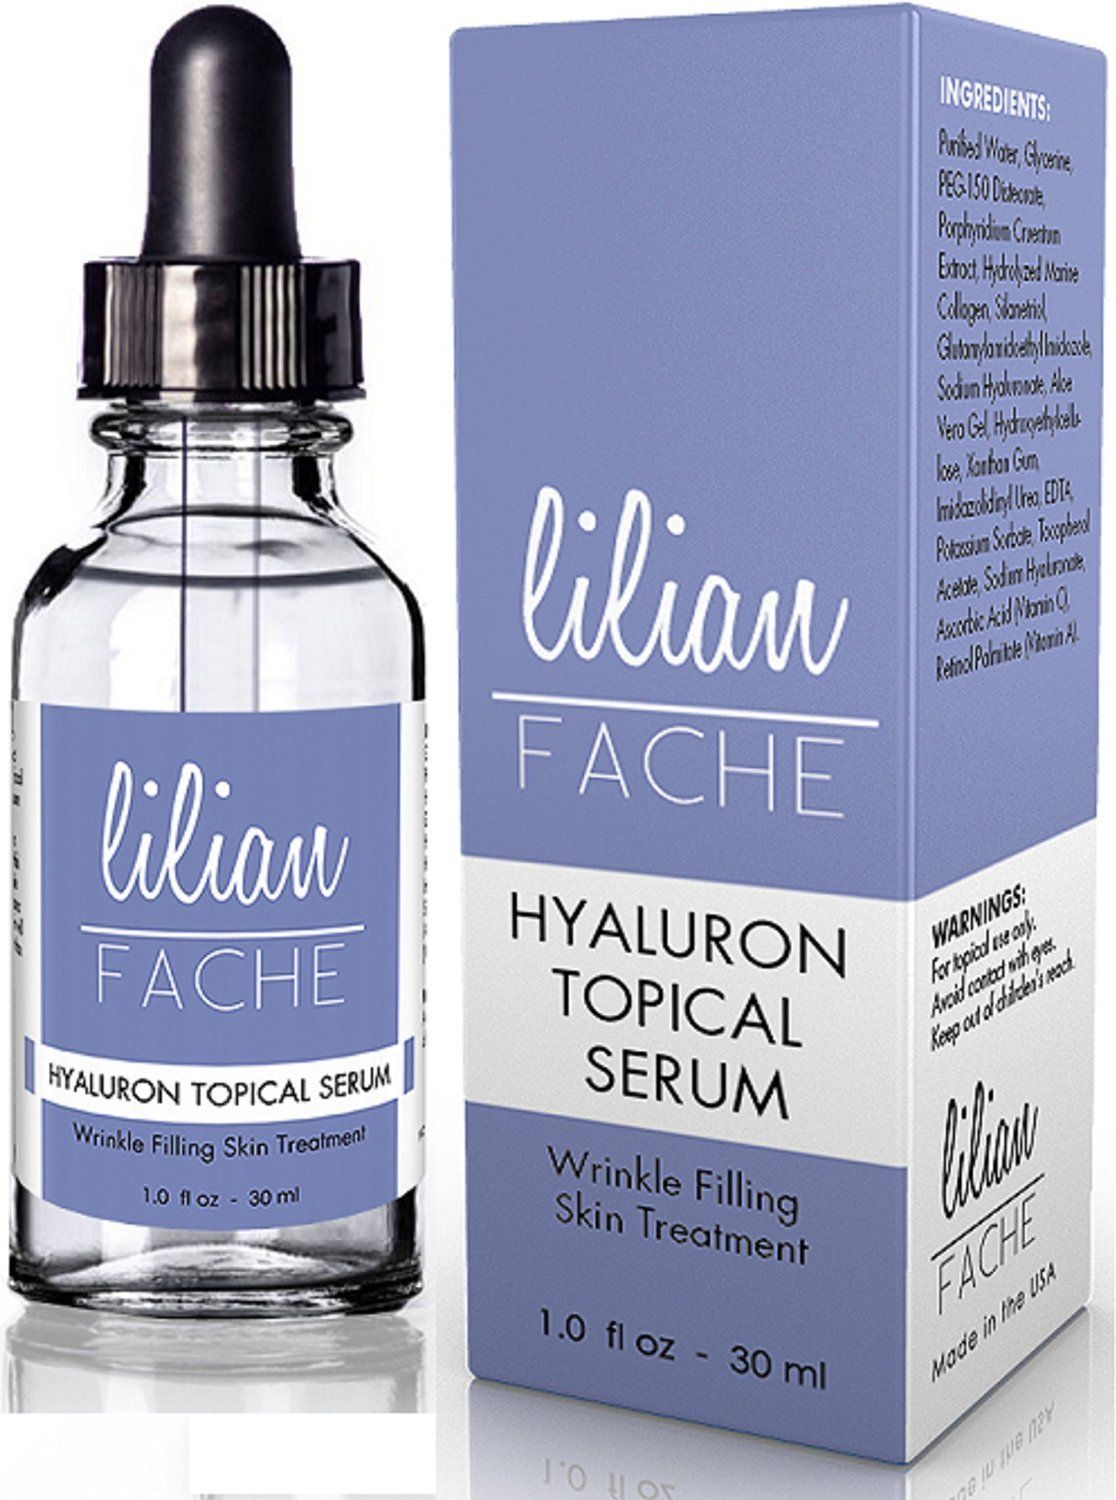 Lilian fache hyaluronic acid topical wrinkle erasing serum ml